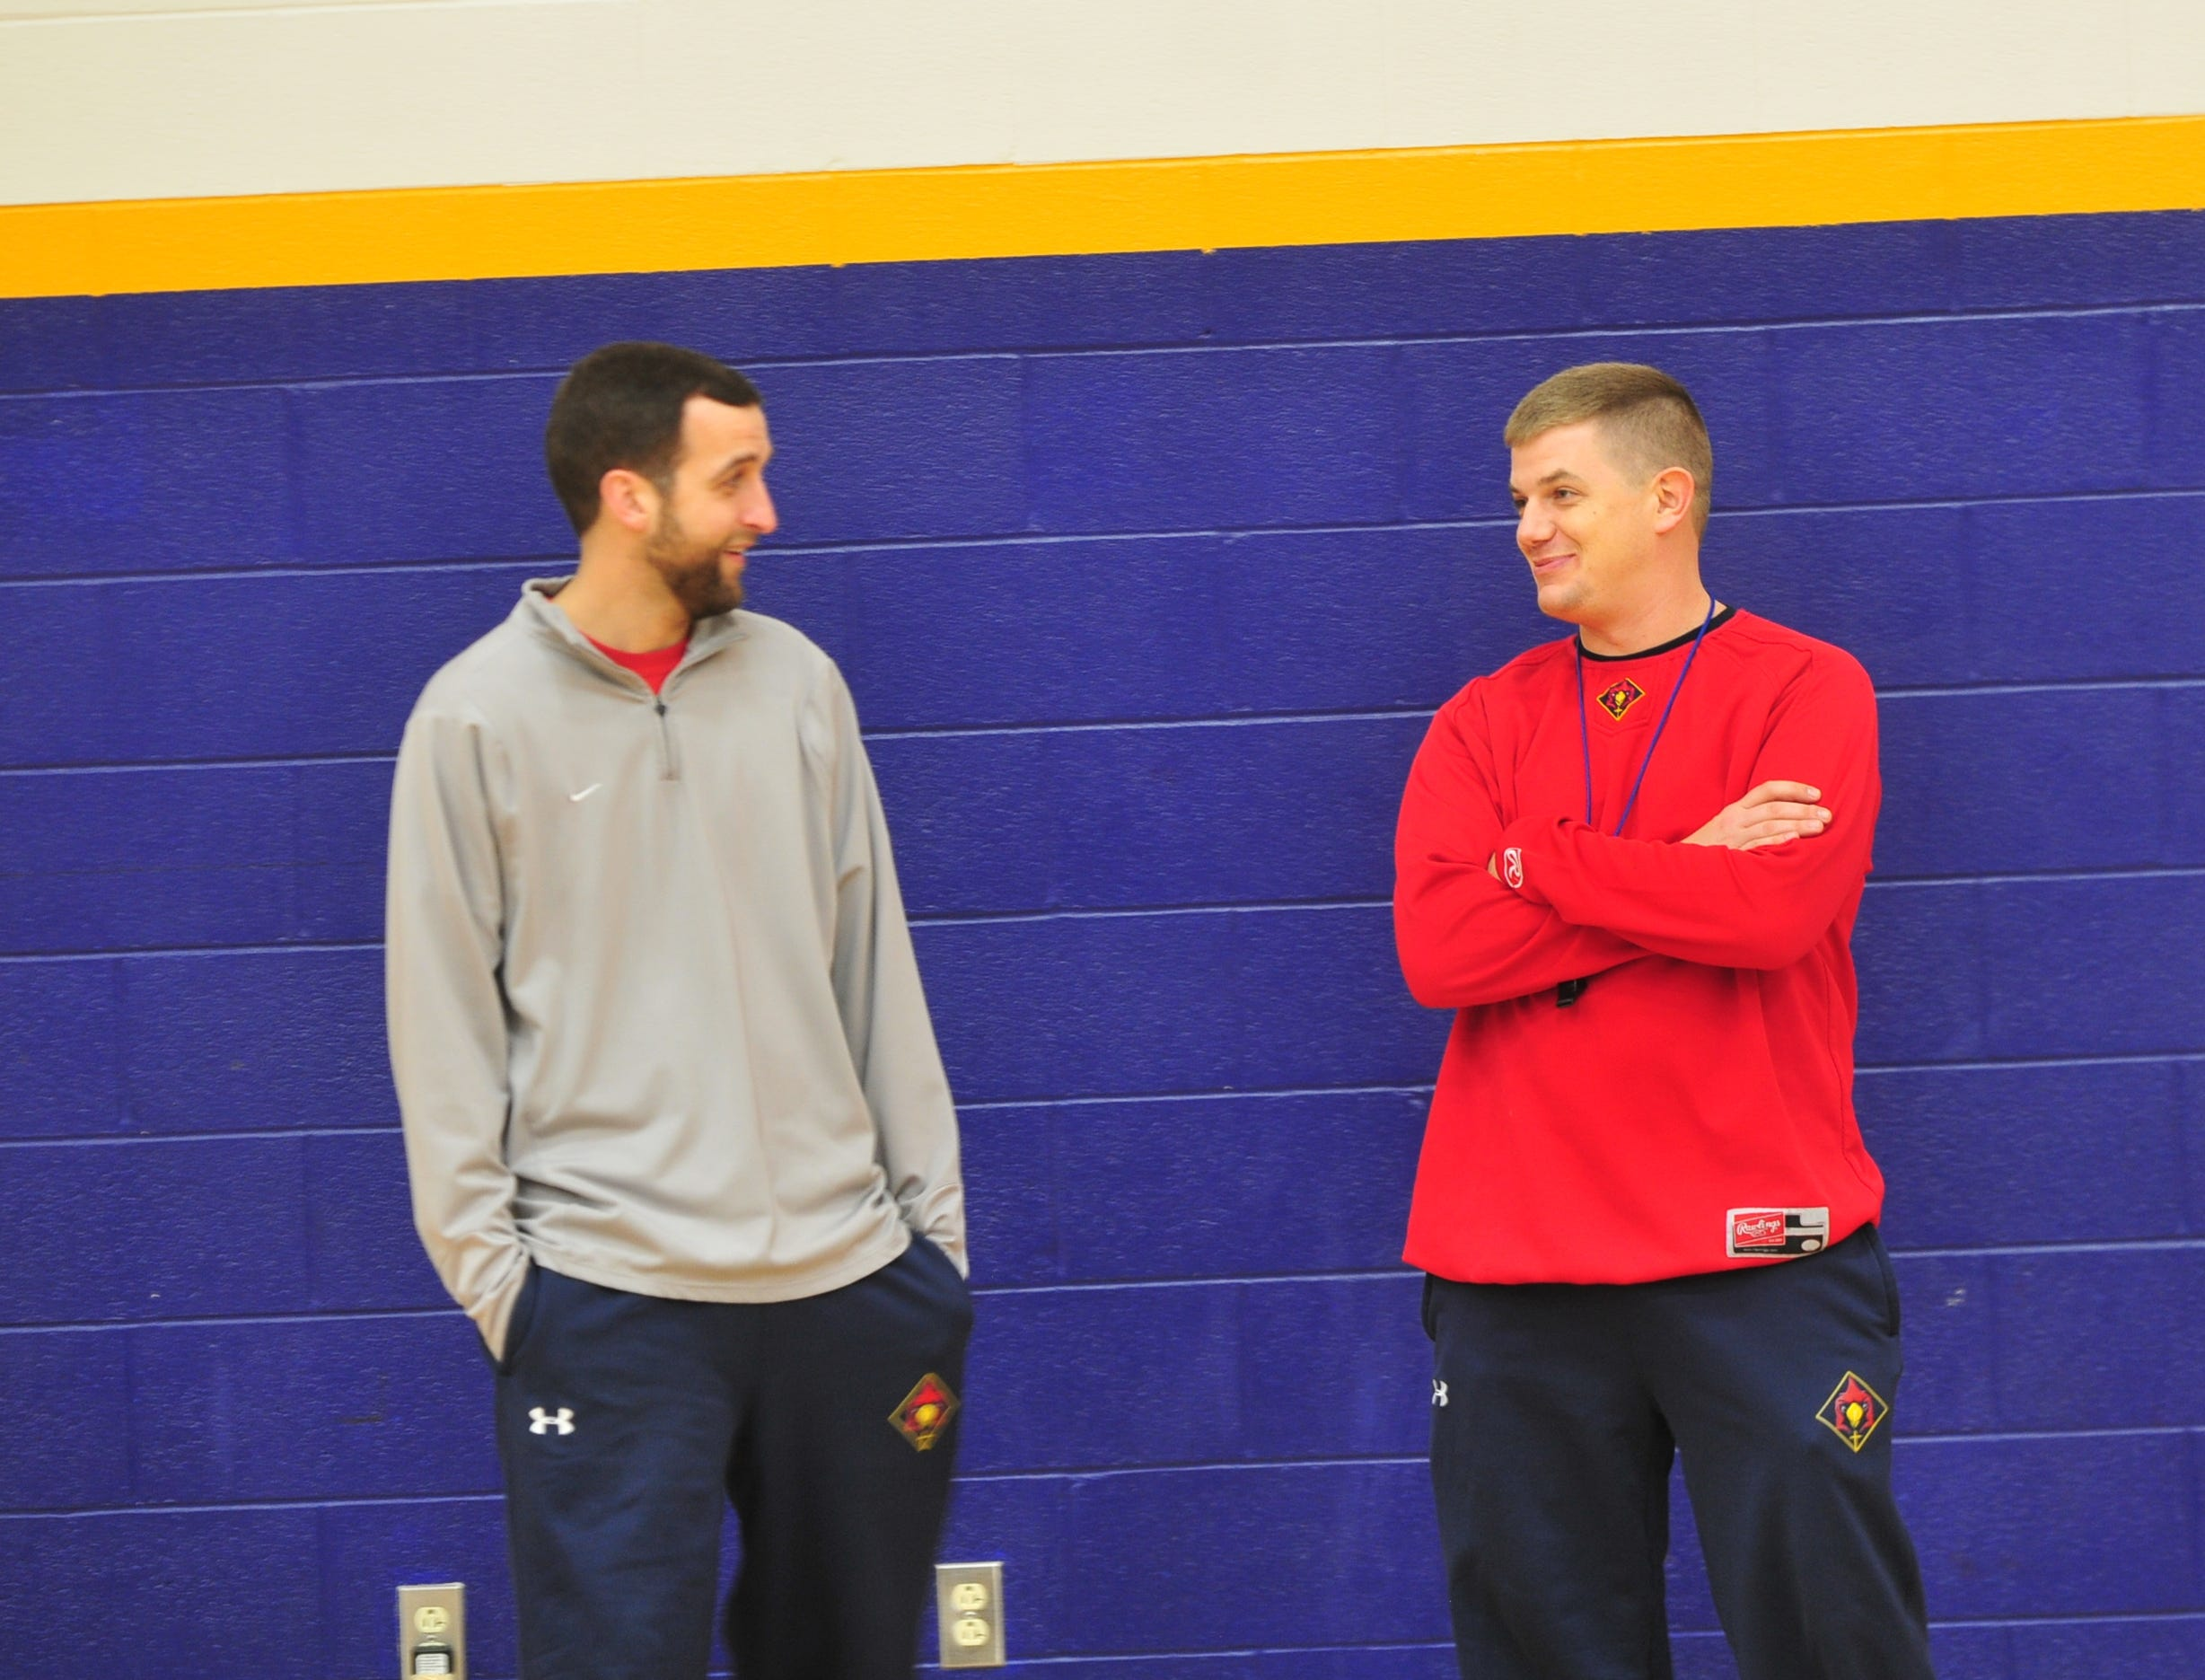 Seton Catholic boys basketball assistant coach Jon Blevins, left, with head coach Josh Jurgens.